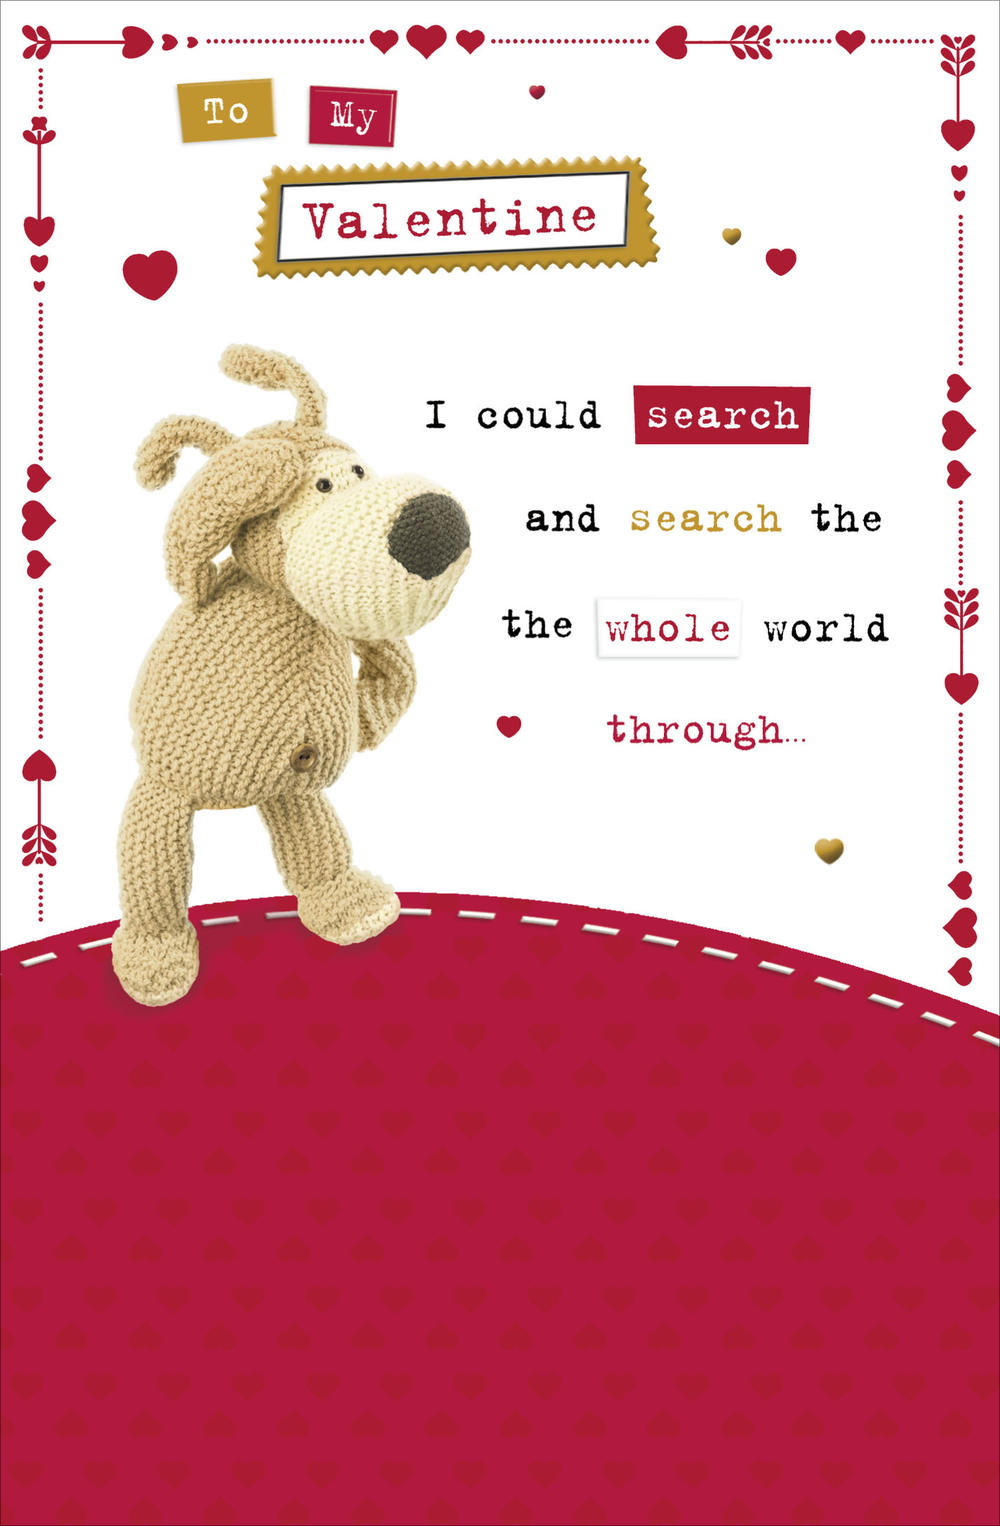 Boofle Search The Whole World Valentine's Day Card